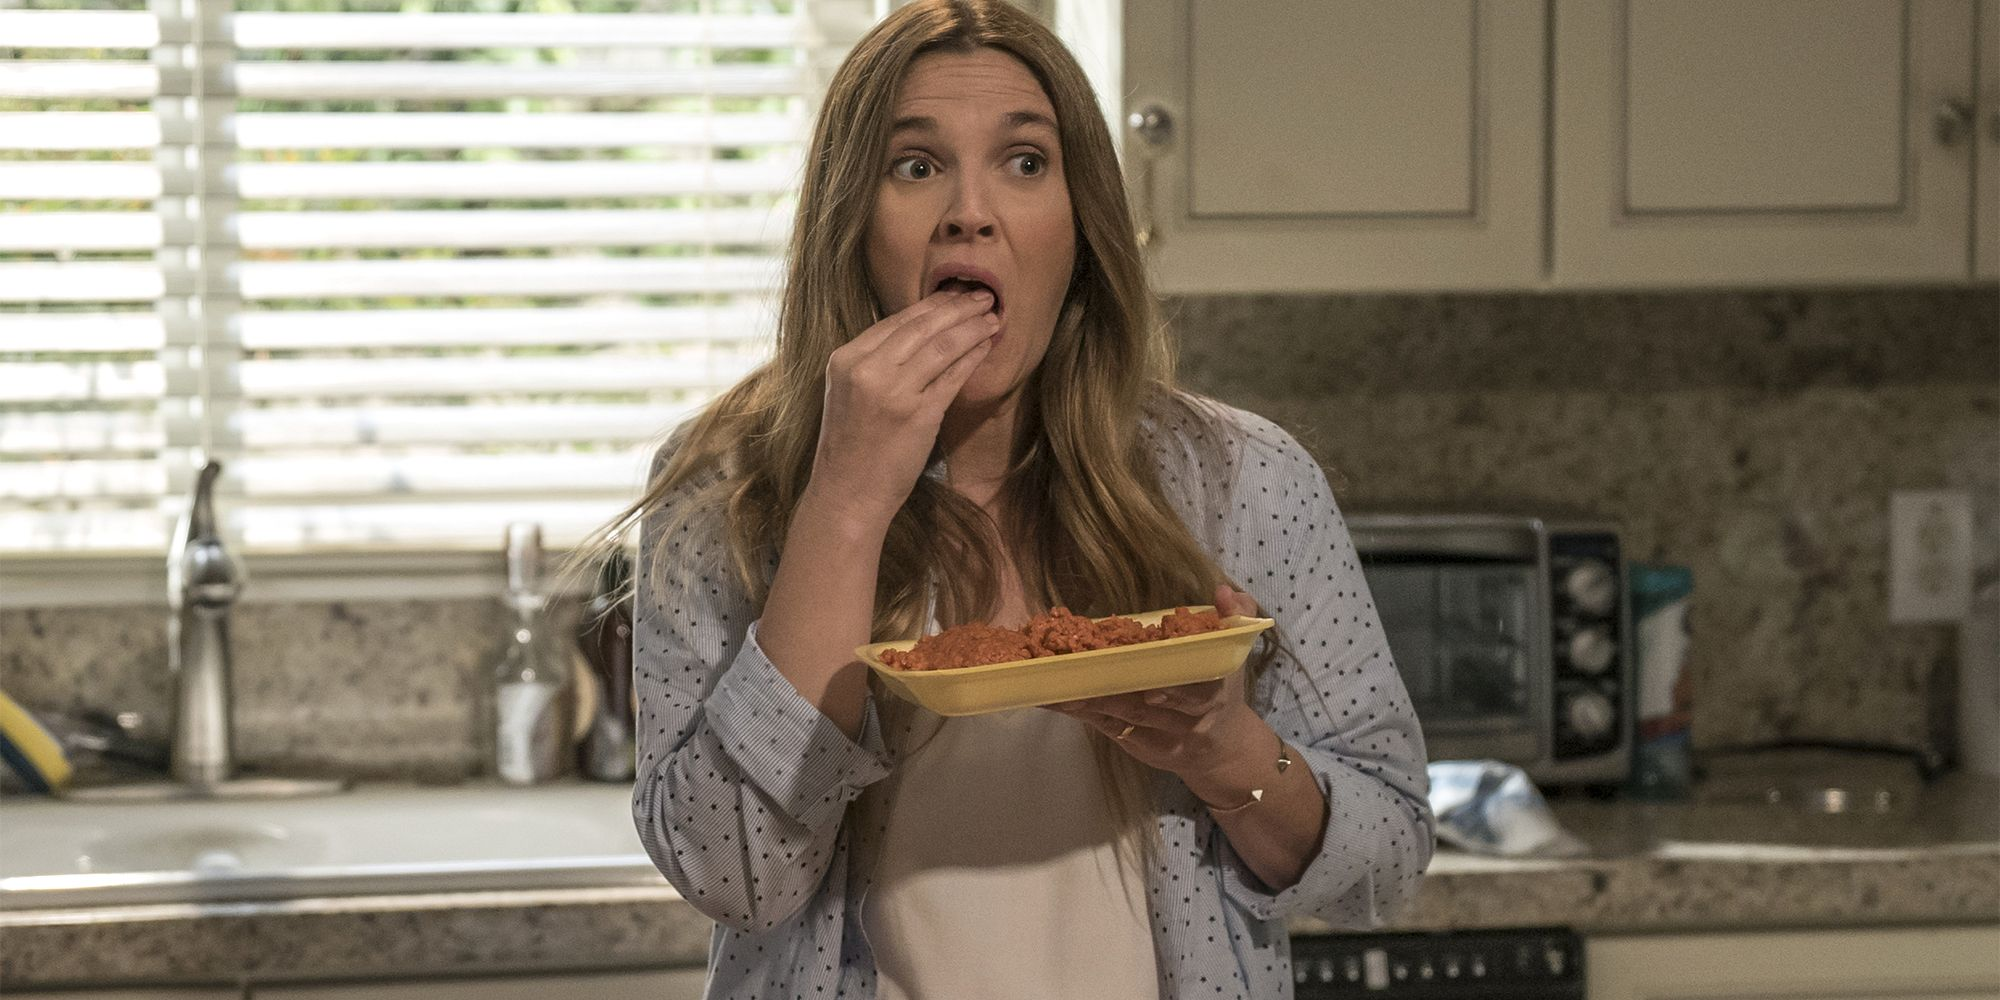 "<p>Drew Barrymore's long-mysterious Netflix comedy unveiled its cheerfully grisly premise recently: Barrymore plays a suburban soccer mom whose unusual eating habits cause some disruption within her cozy family life. (Spoiler: She's a zombie, but prefers not to use that term.) <span class=""redactor-invisible-space"" data-verified=""redactor"" data-redactor-tag=""span"" data-redactor-class=""redactor-invisible-space""></span></p><p><em data-verified=""redactor"" data-redactor-tag=""em"">Santa Clarita Diet</em><span class=""redactor-invisible-space""> premieres Friday, February 3 with 13 episodes on Netflix<span class=""redactor-invisible-space"">.</span></span><br></p>"